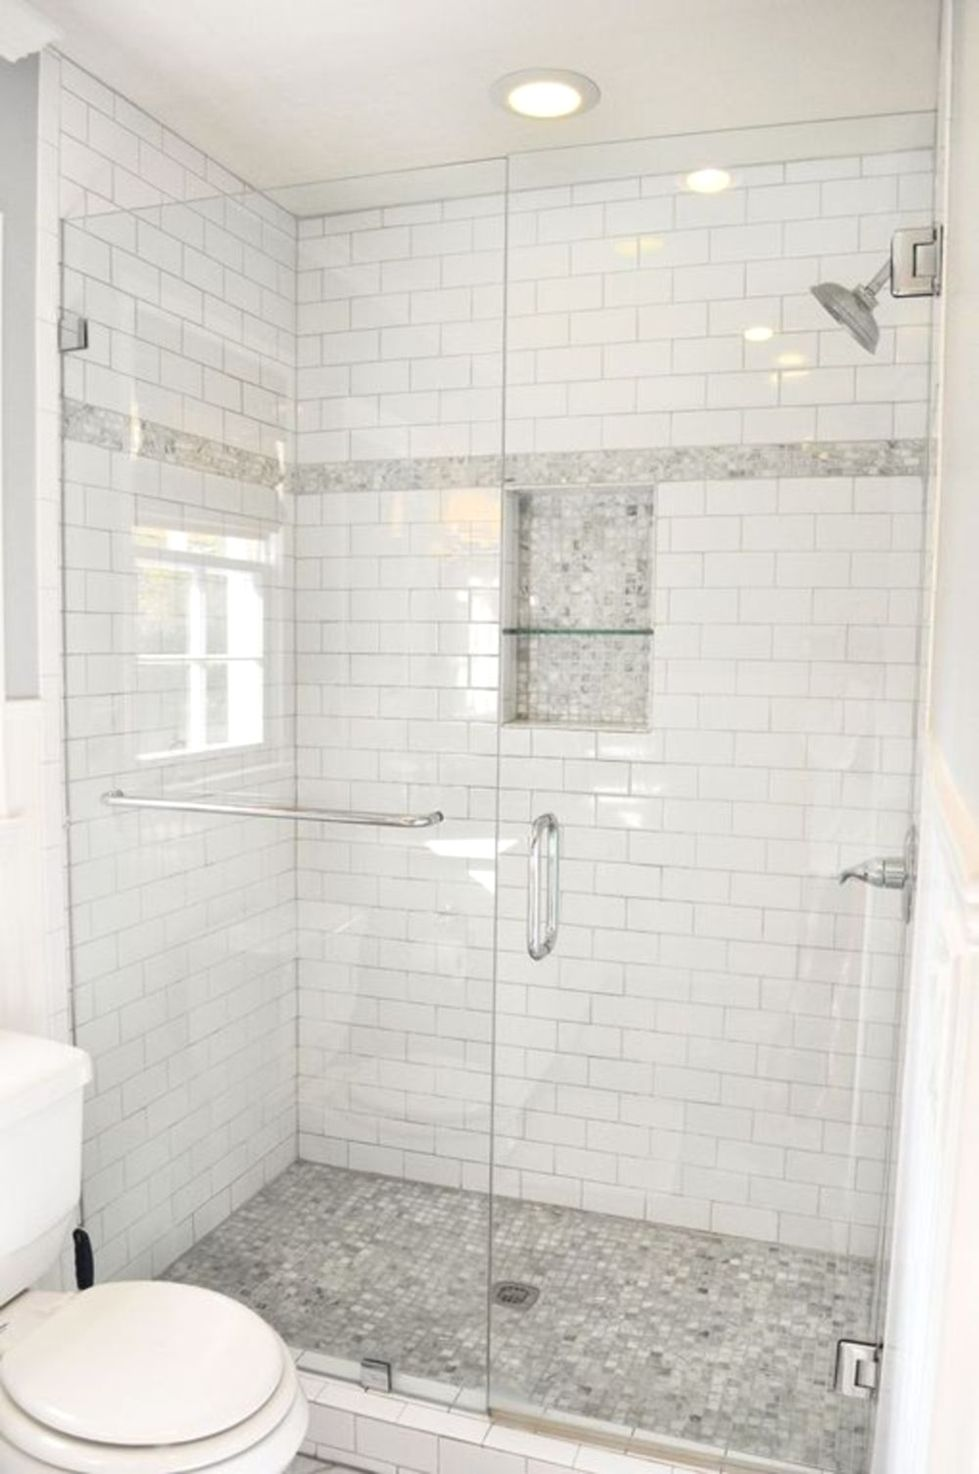 The Cons Of Bathroom Remodeling Small Bathroom With Shower